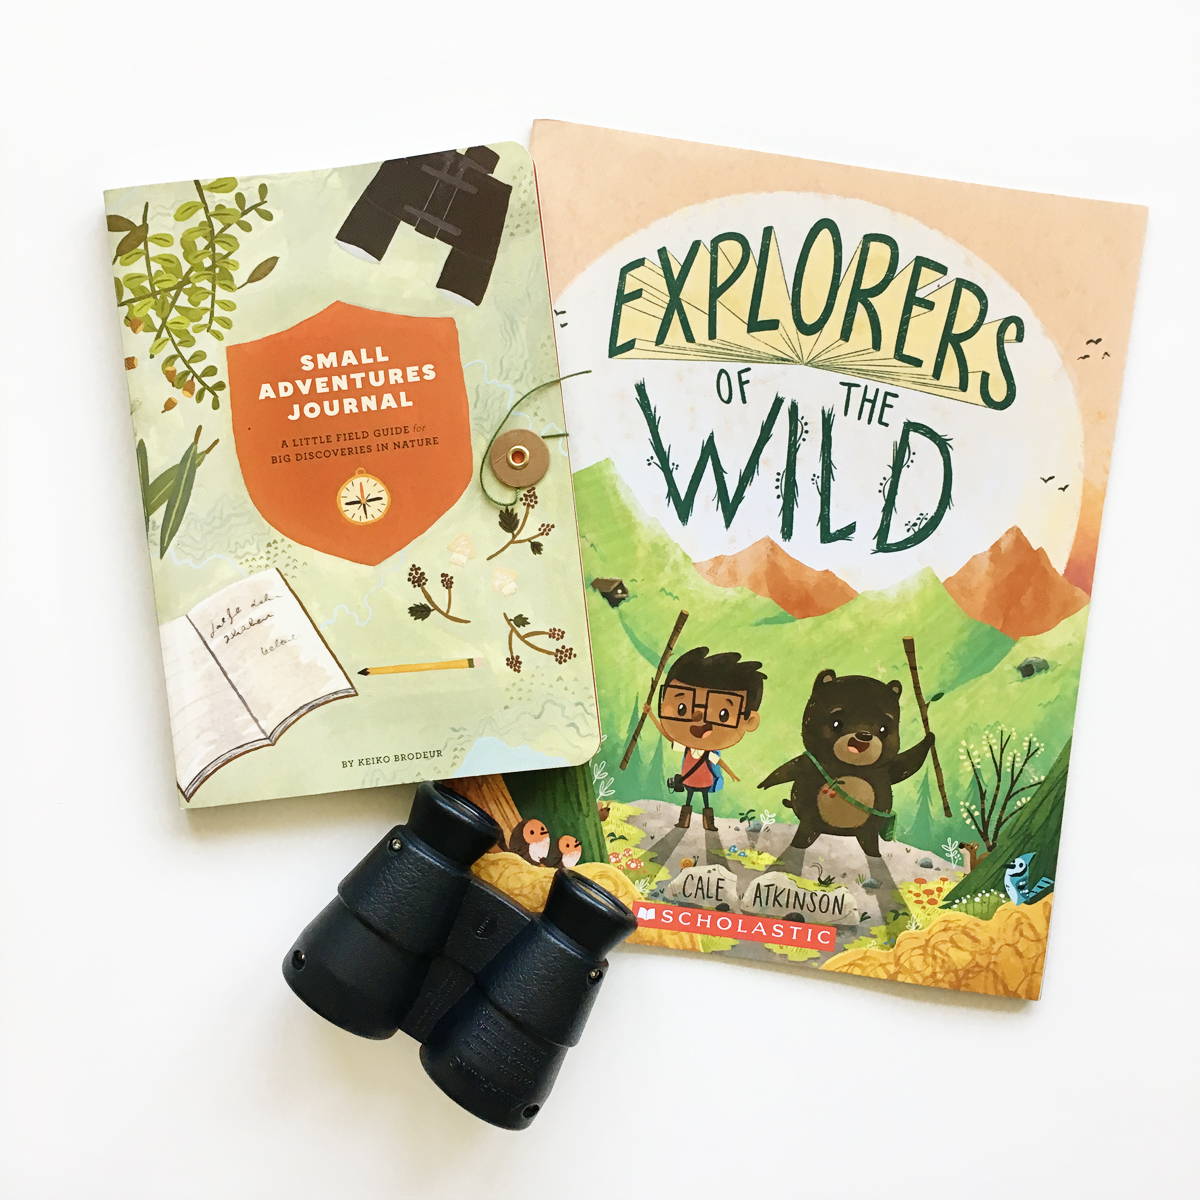 Small Adventures Journal and Explorers of the Wild | Books For Diversity